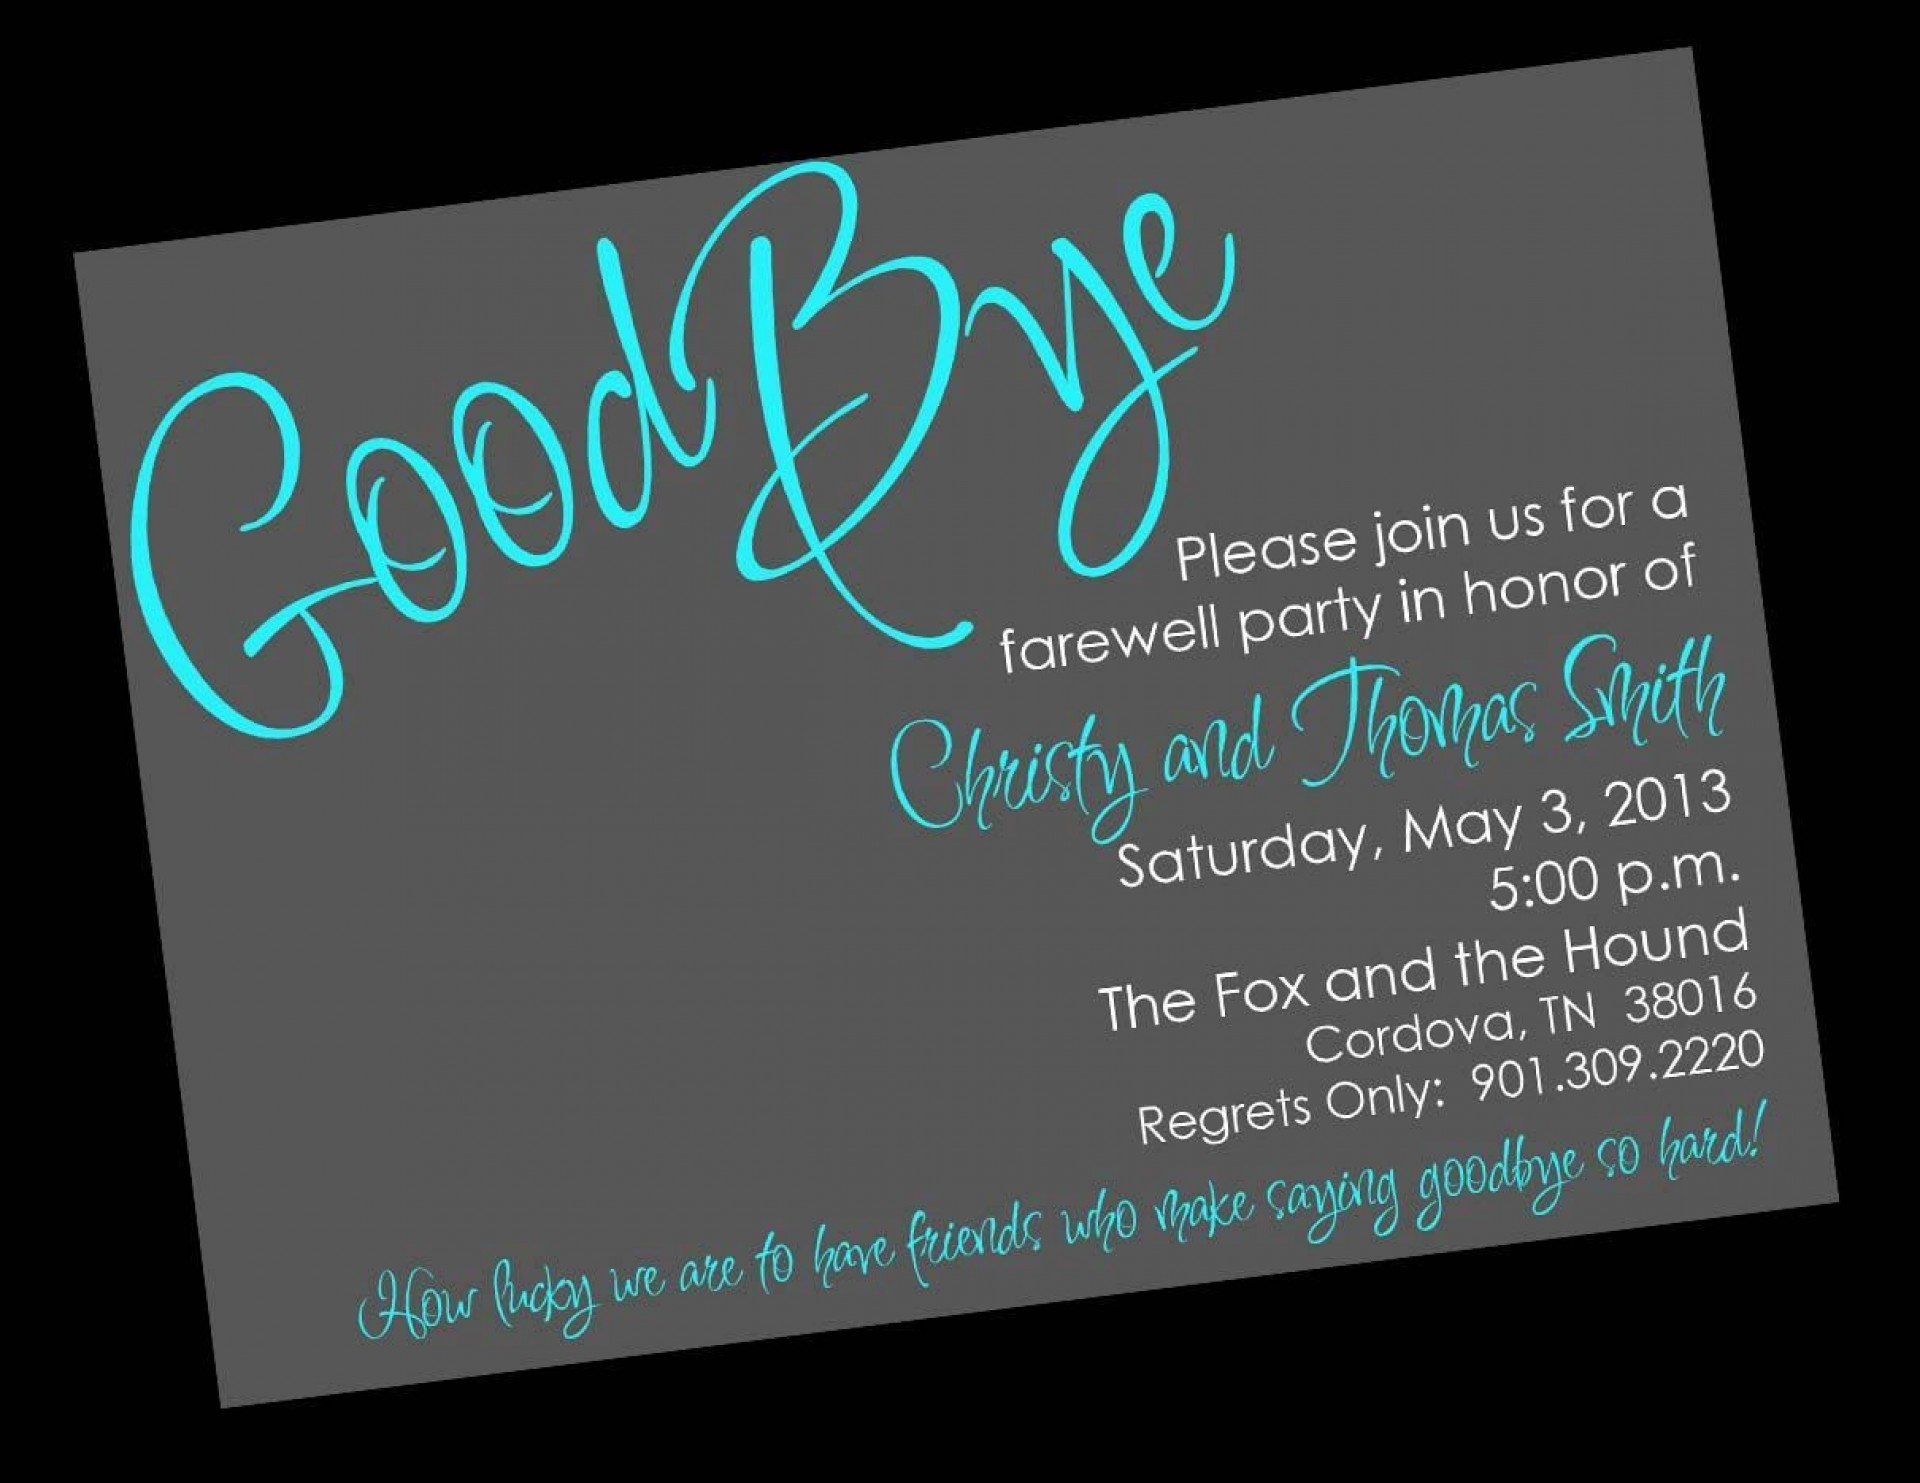 002 Impressive Farewell Party Invitation Template Free Image  Email Printable Word1920